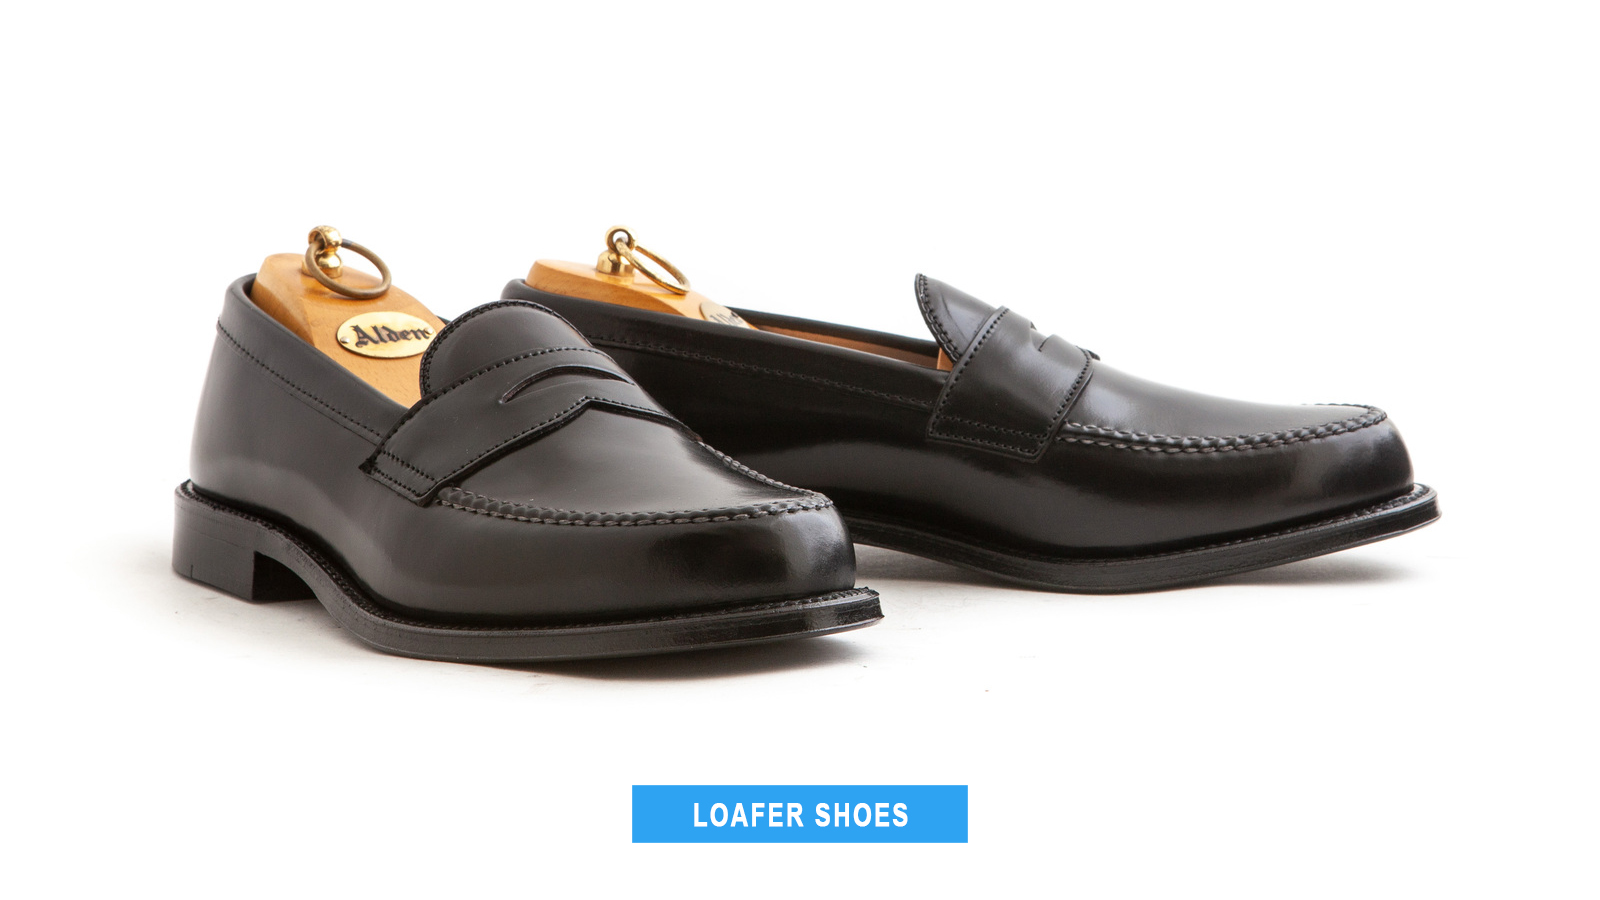 loafer dress shoes style